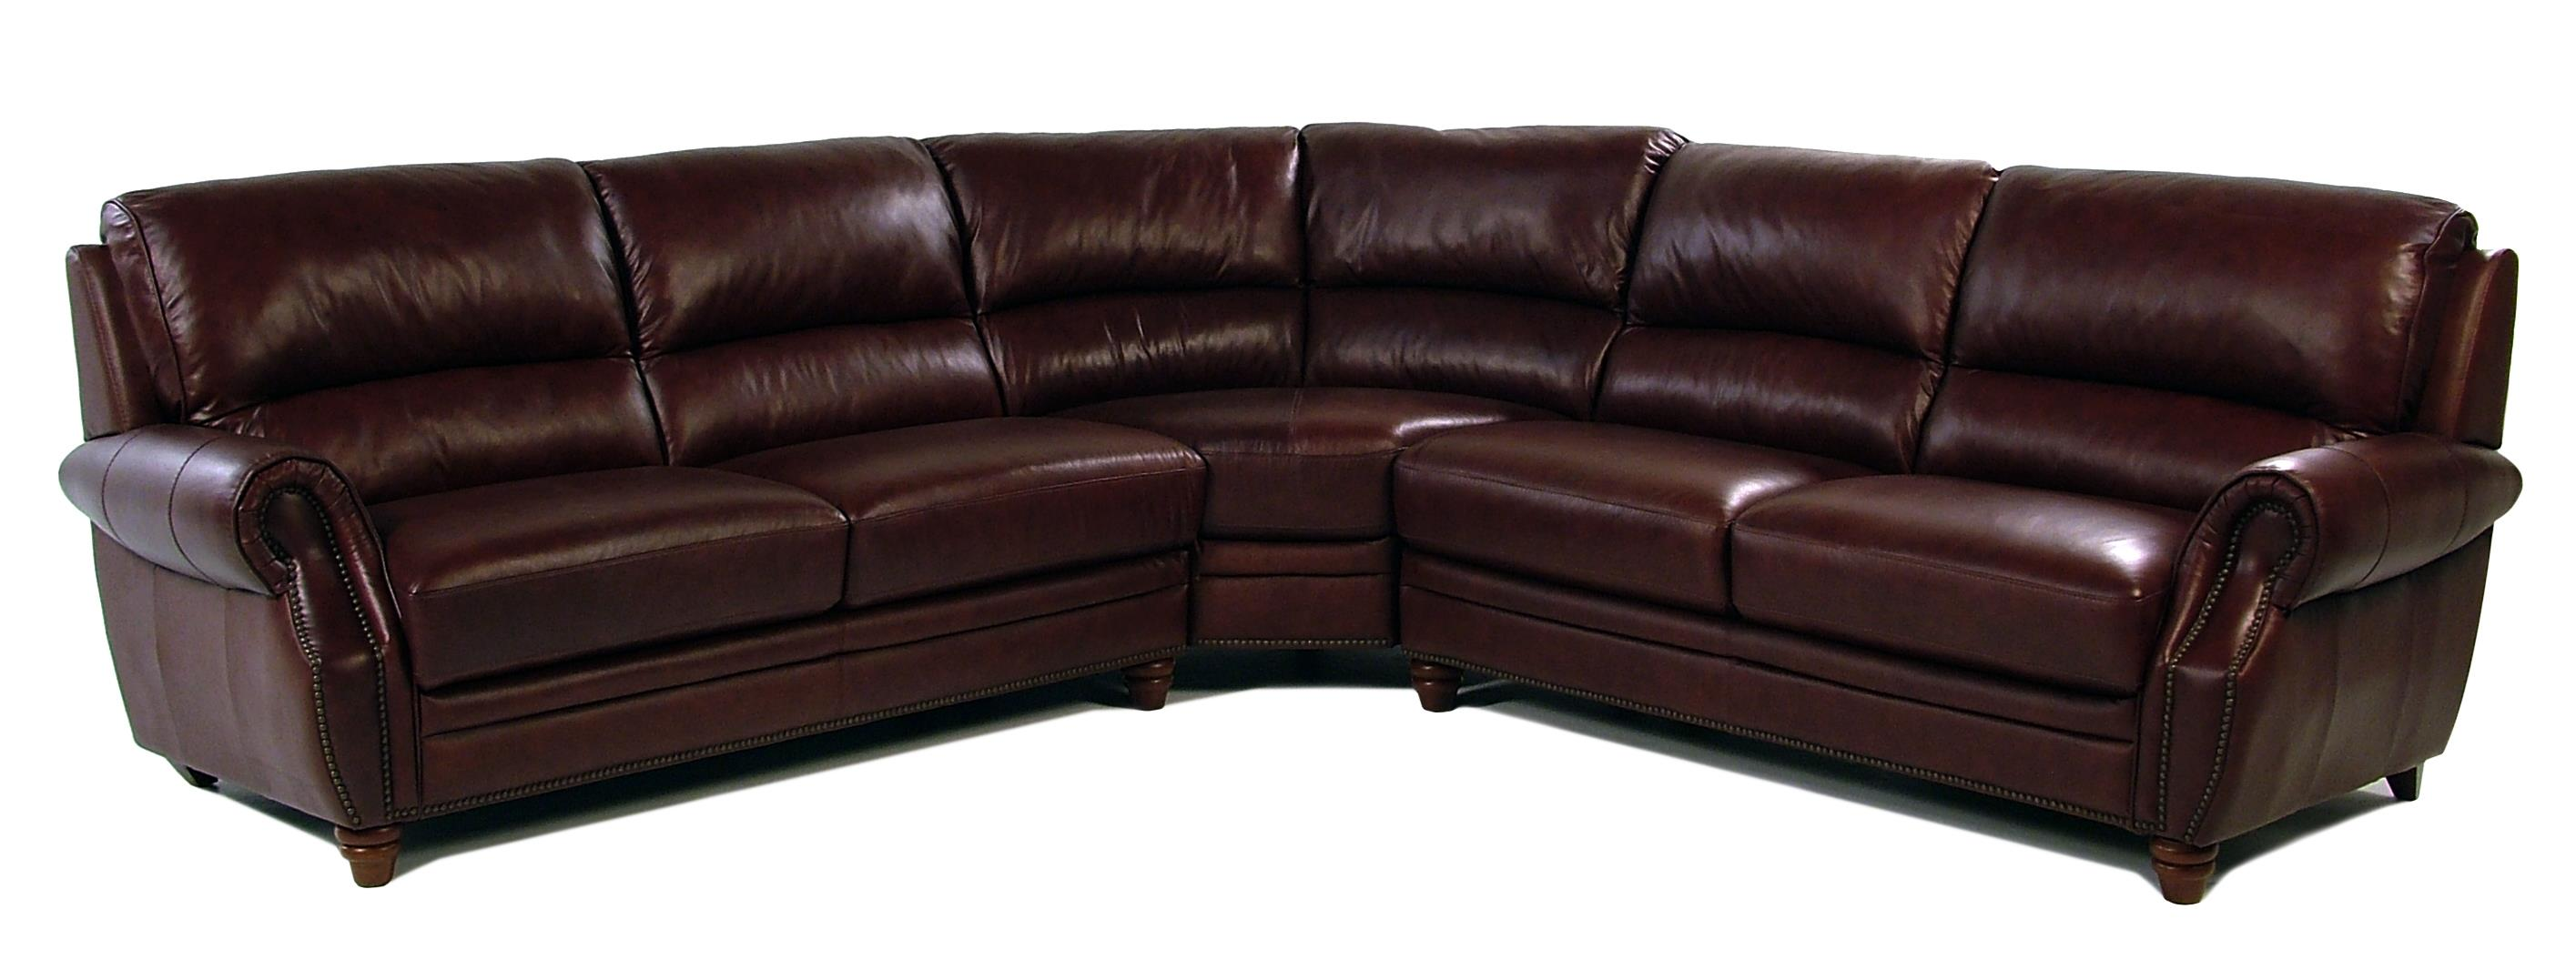 Giovani Barrister 3-Piece Traditional Style Leather Sectional - Item Number: 10441NH-2.5EL+2.5ER+C12